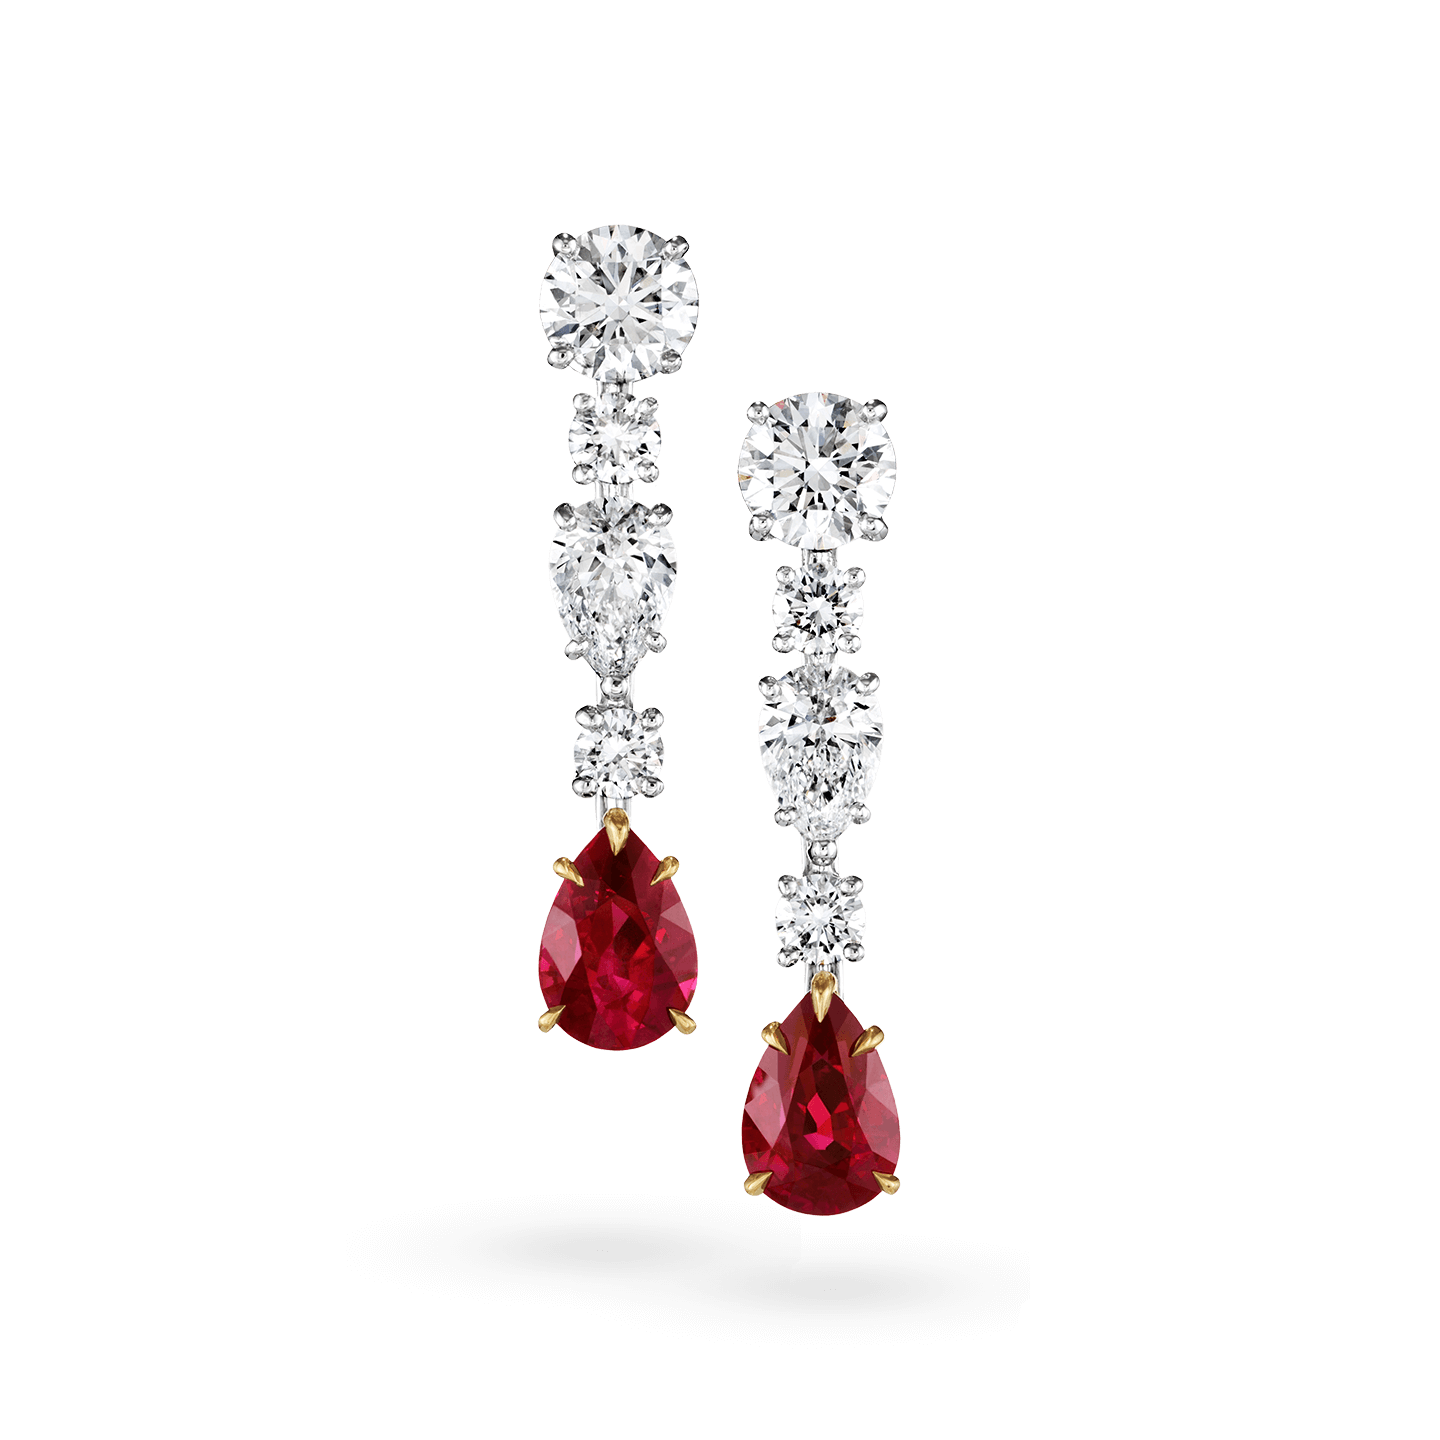 Diamond and Ruby Drop Earrings, Product Image 1